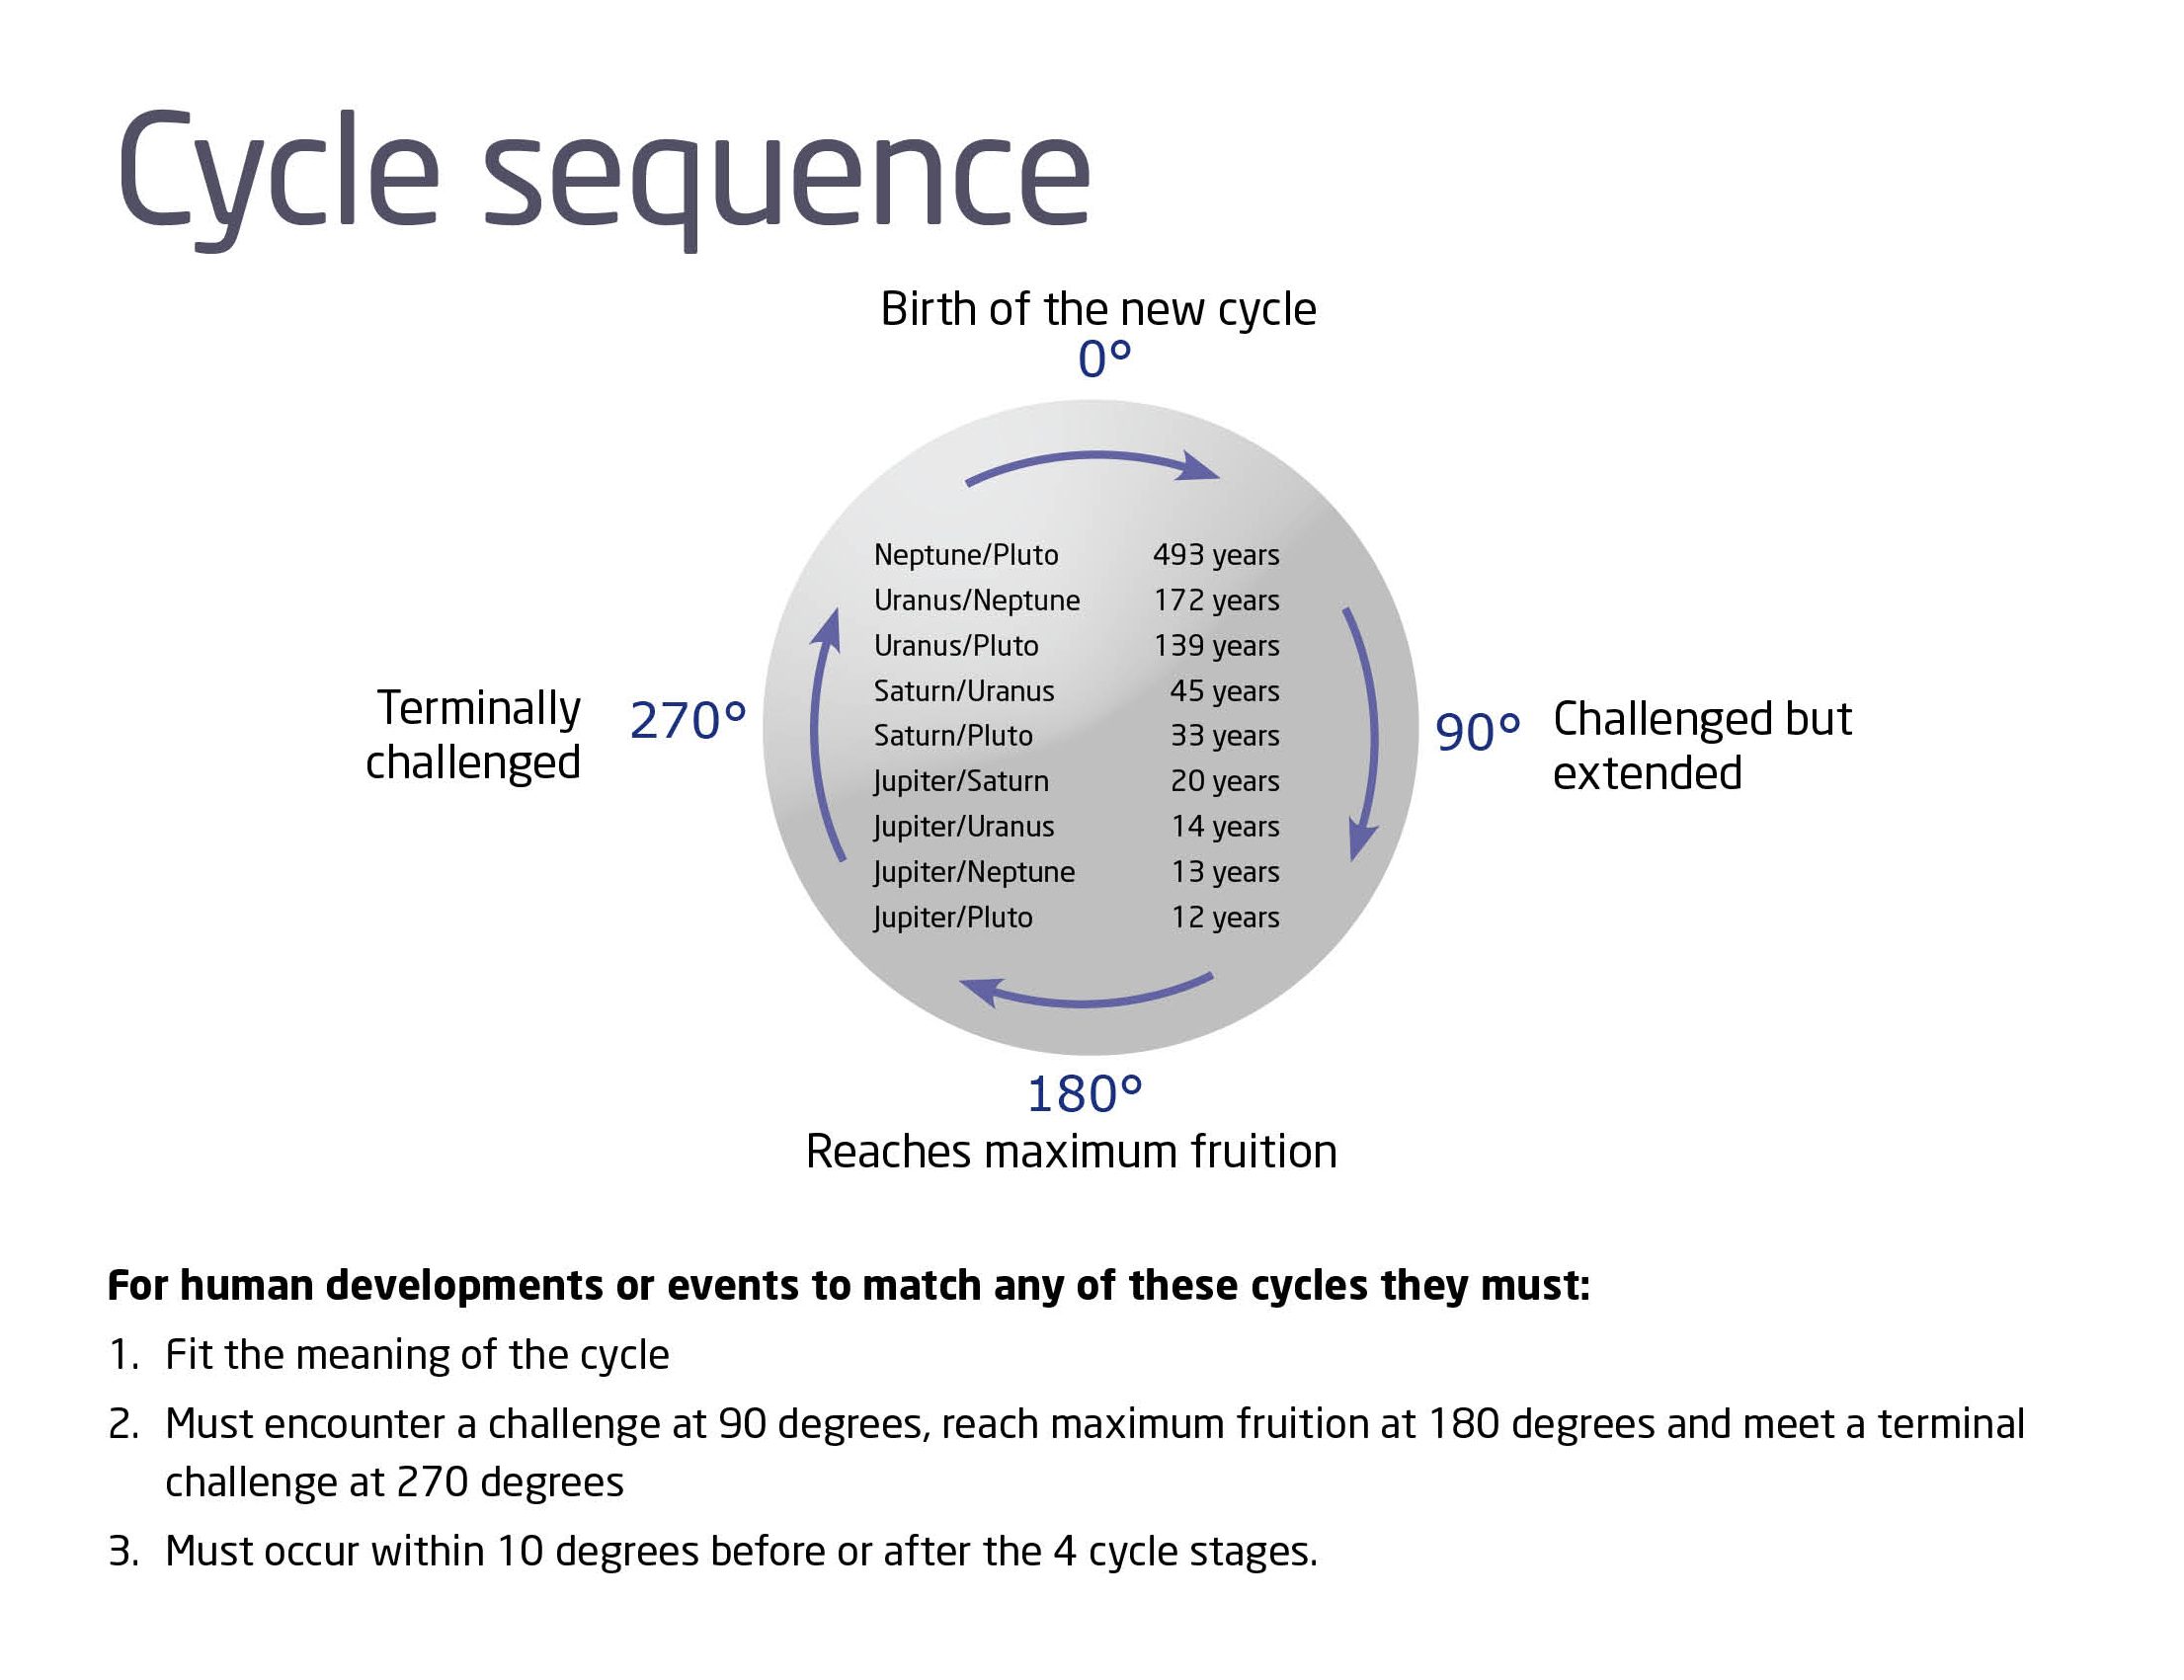 Cycle Sequence